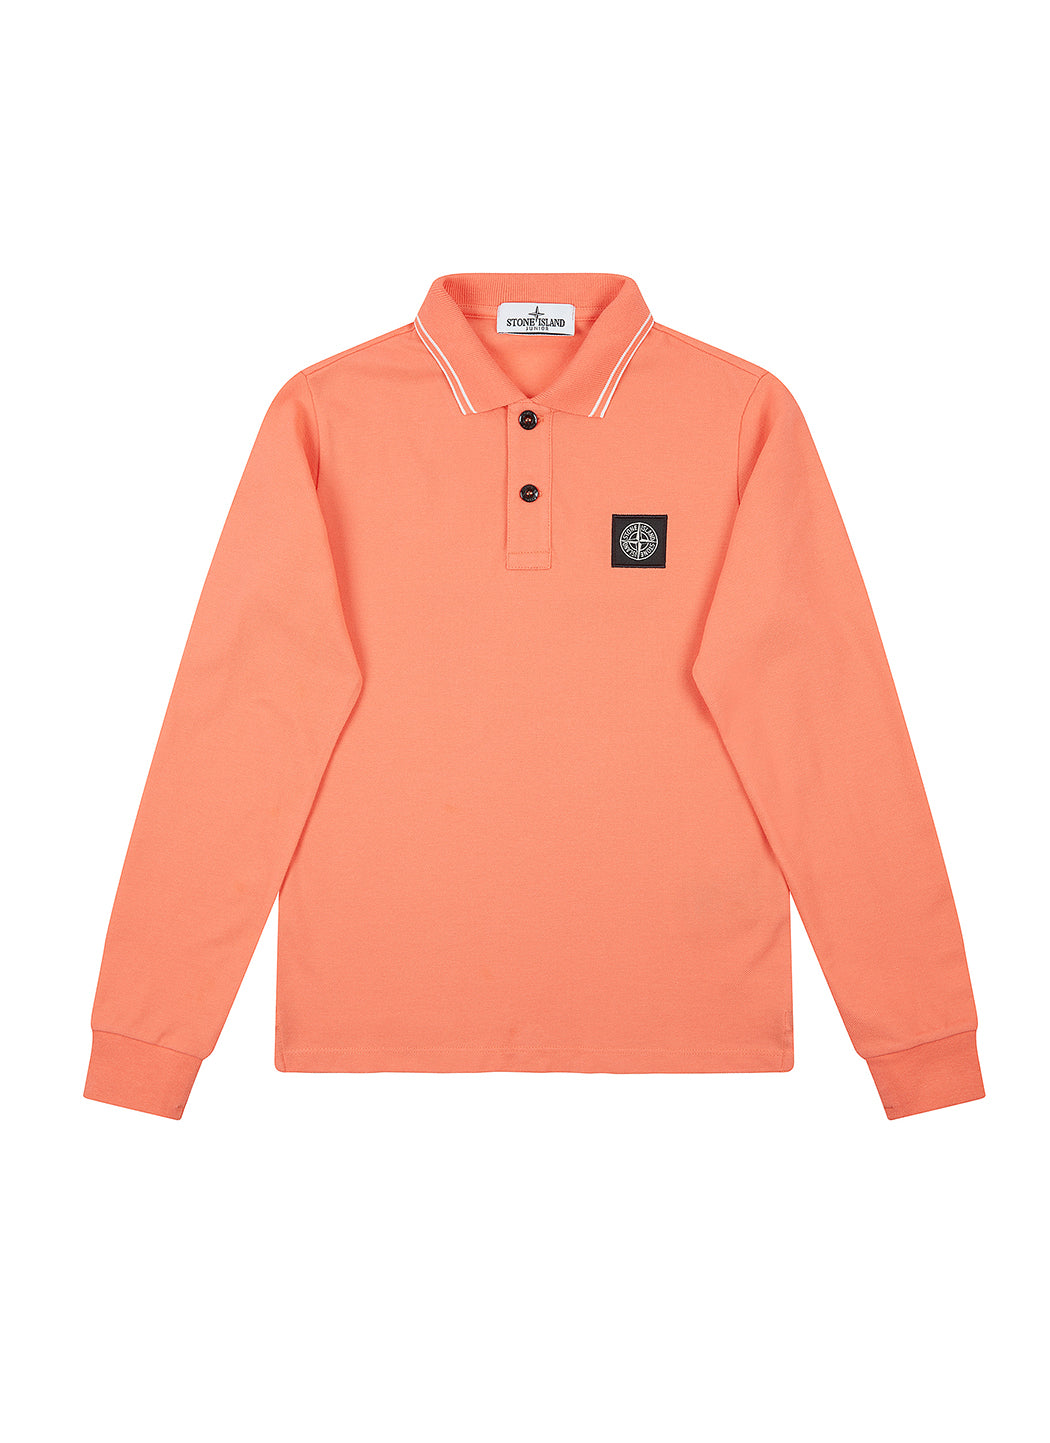 20748 Long Sleeve Polo Shirt in Lobster